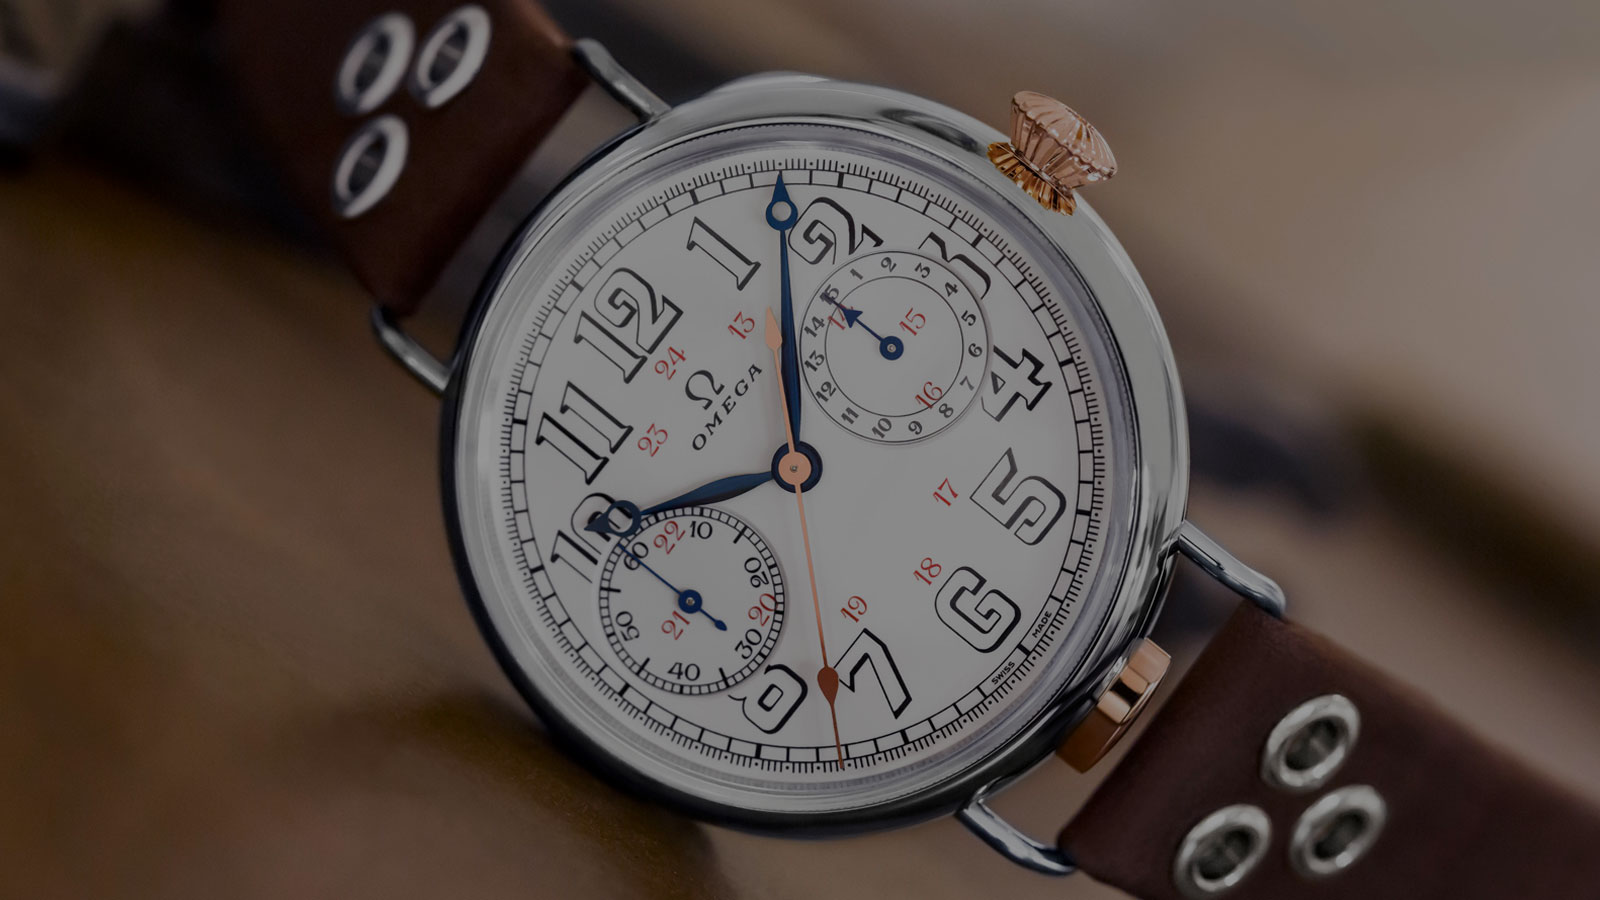 Specialities First Omega Wrist-chronograph Collection - Video - 53958